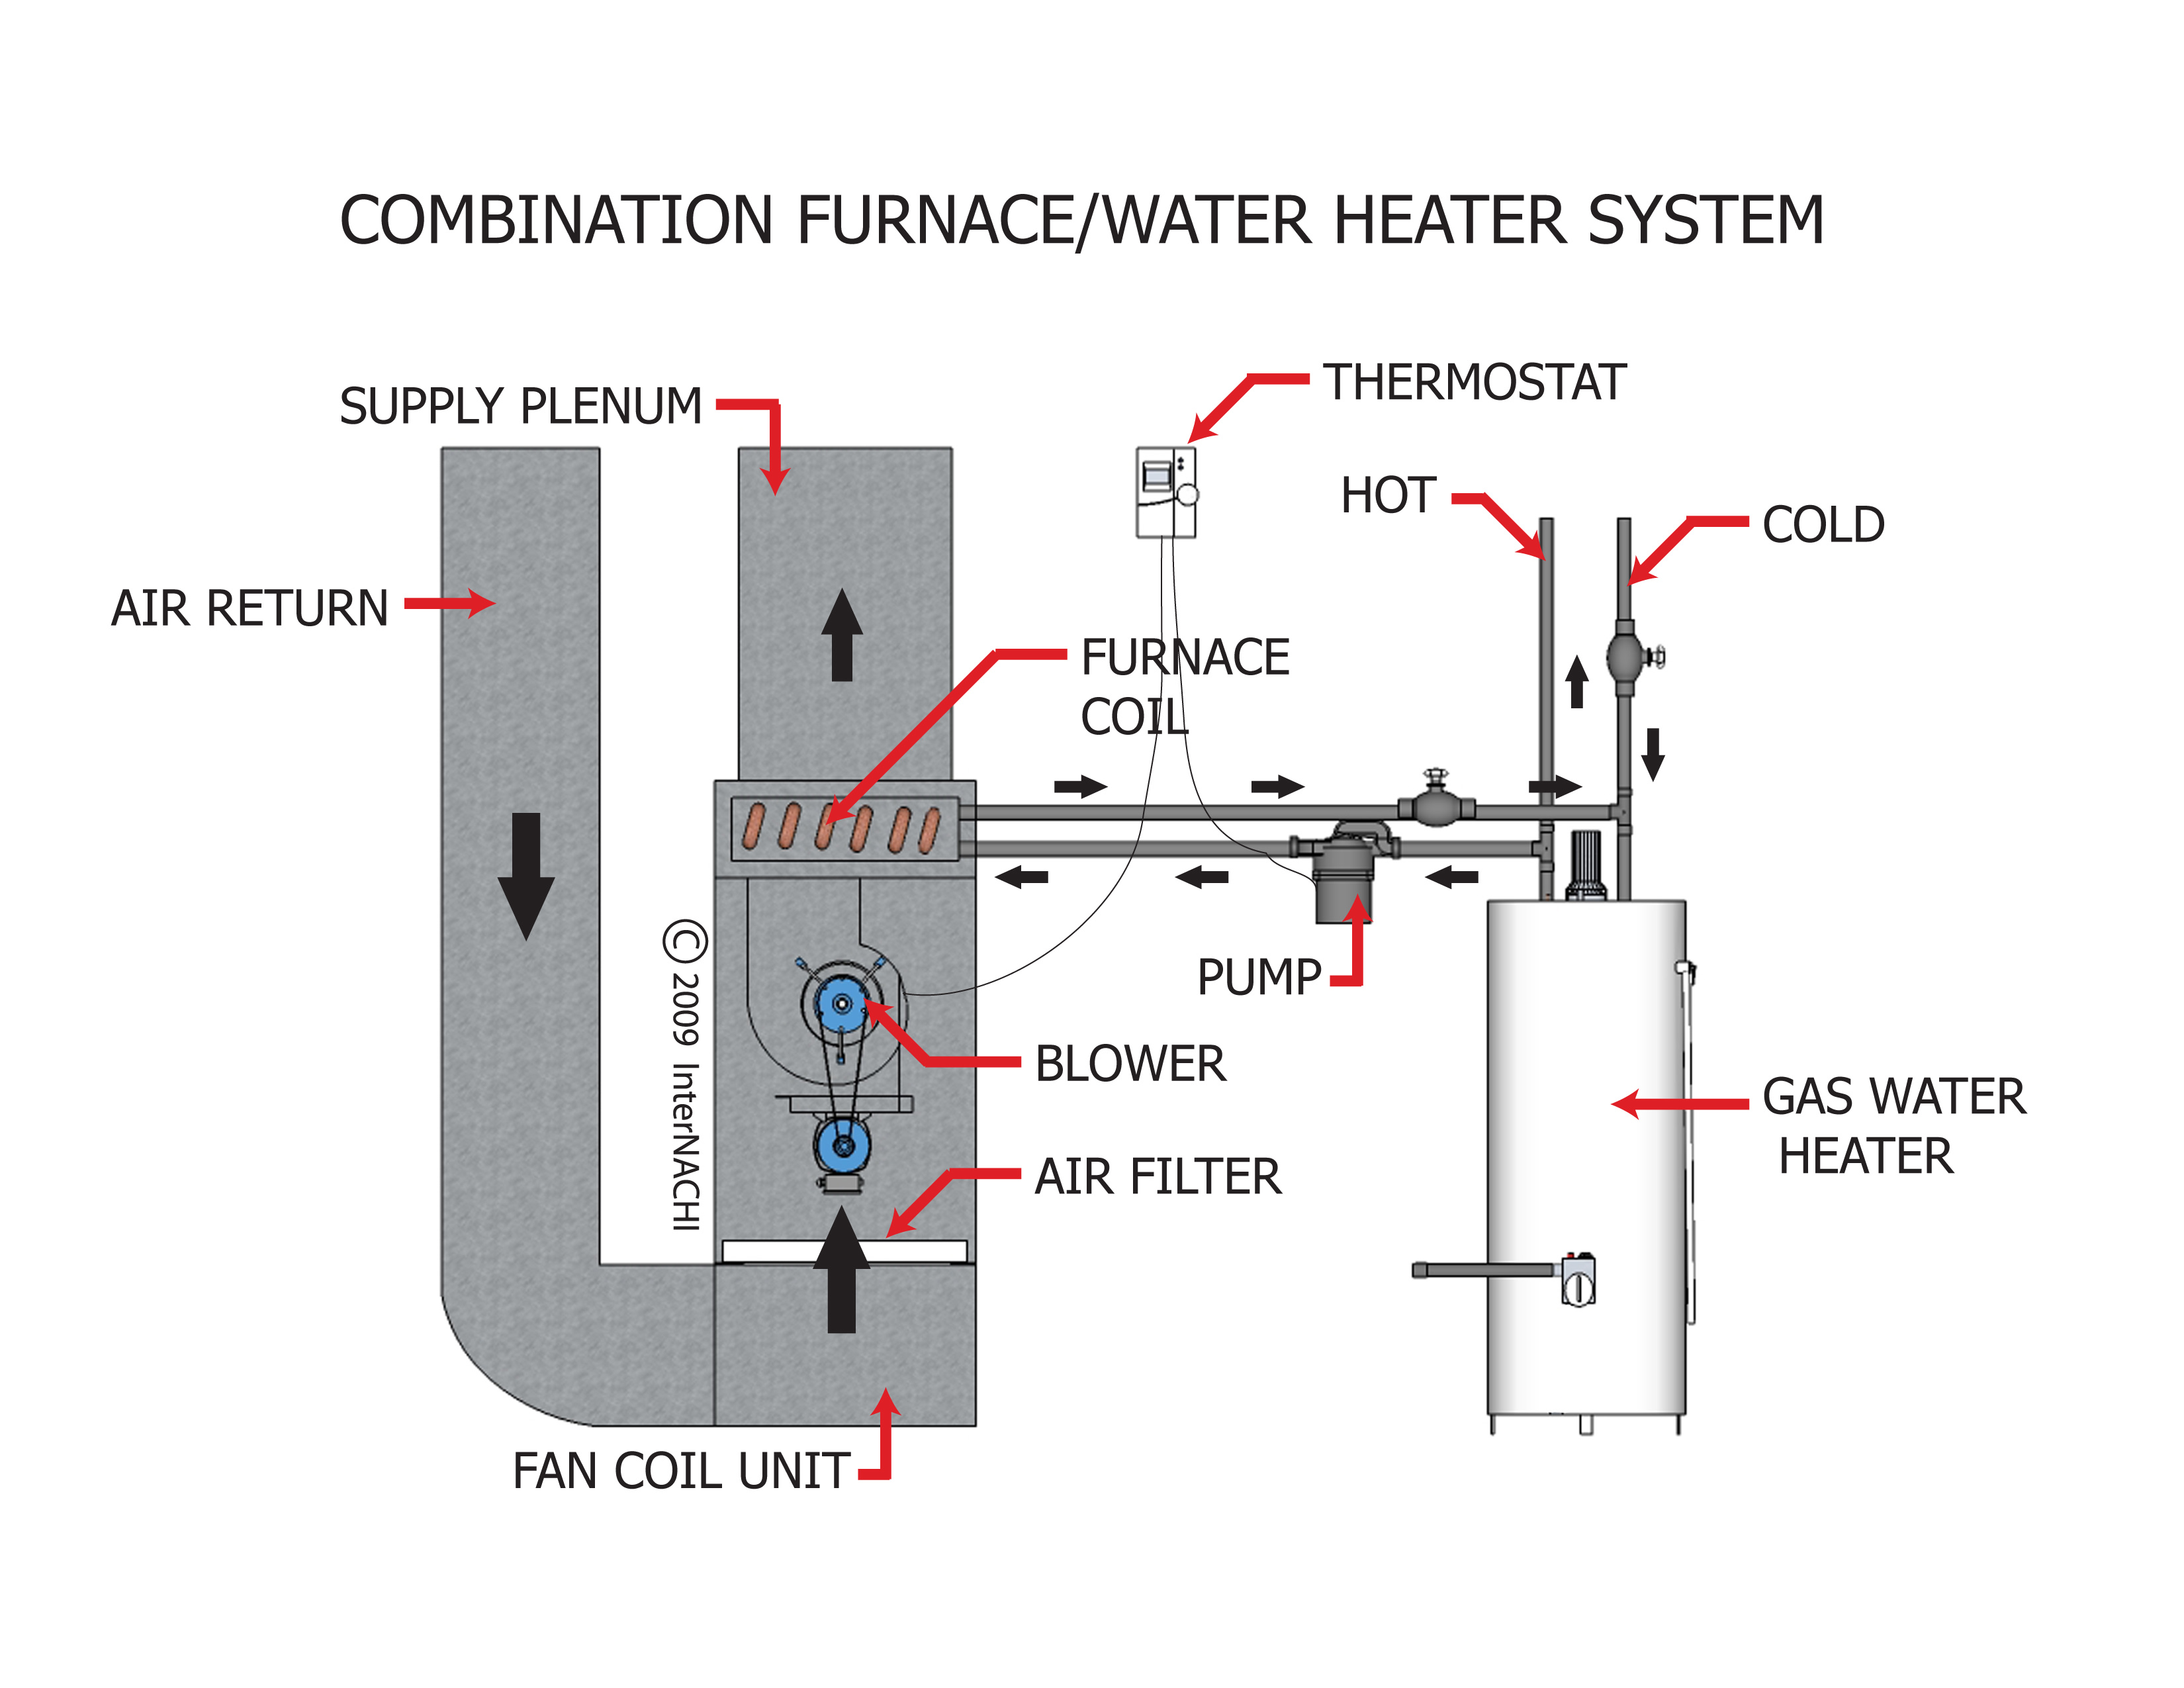 Combination furnace/water heater system.